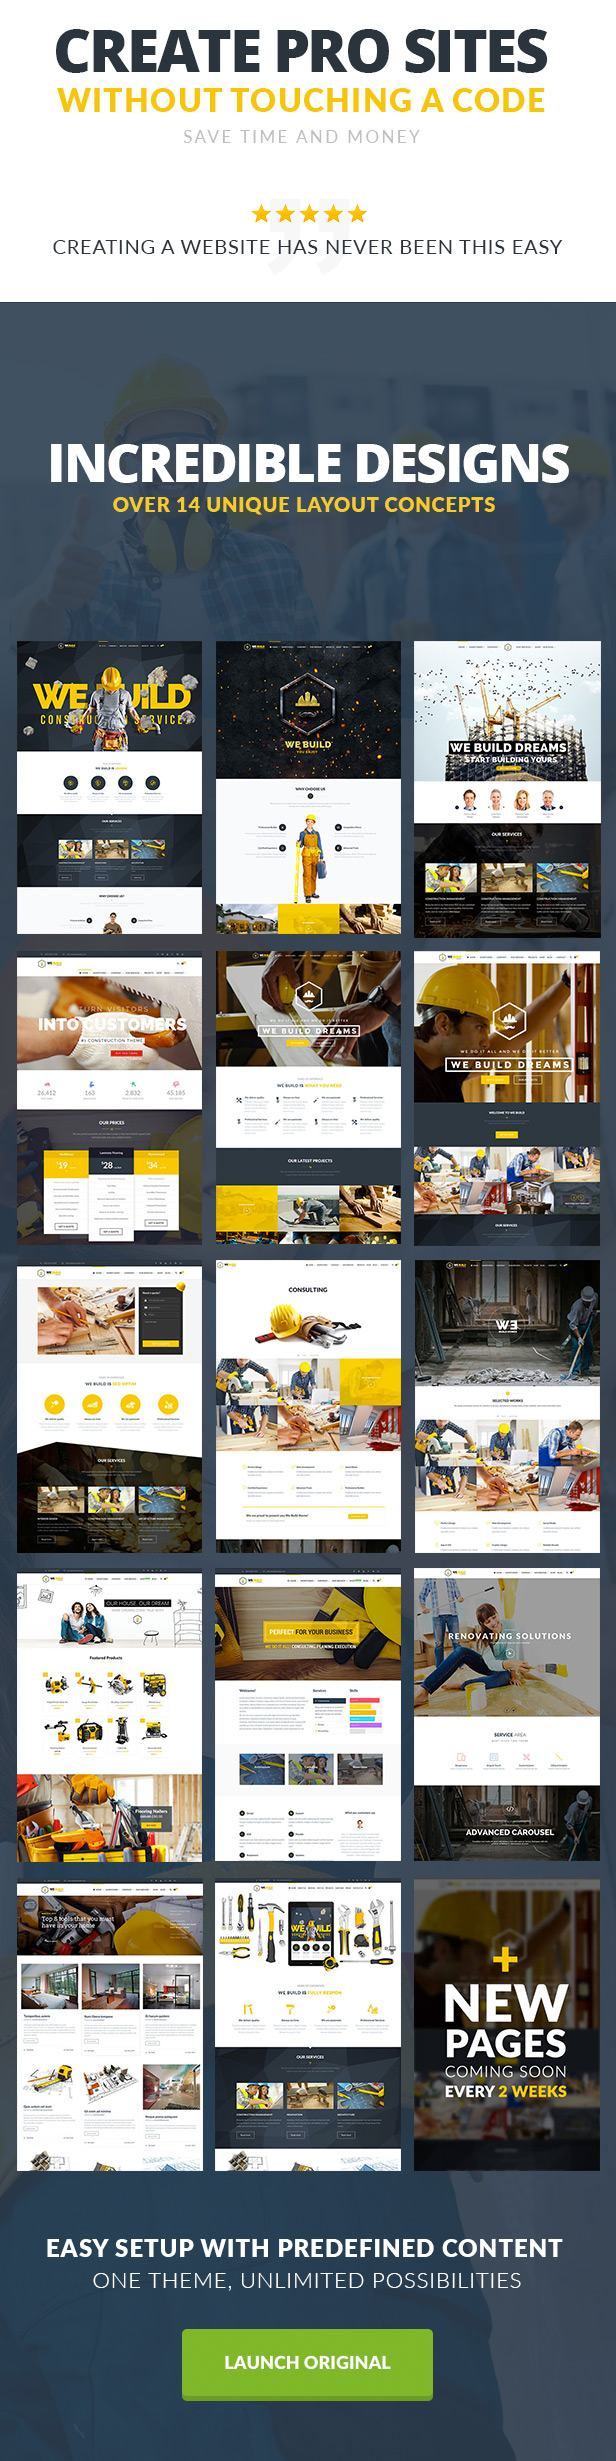 We Build - Construction WordPress Theme - 2